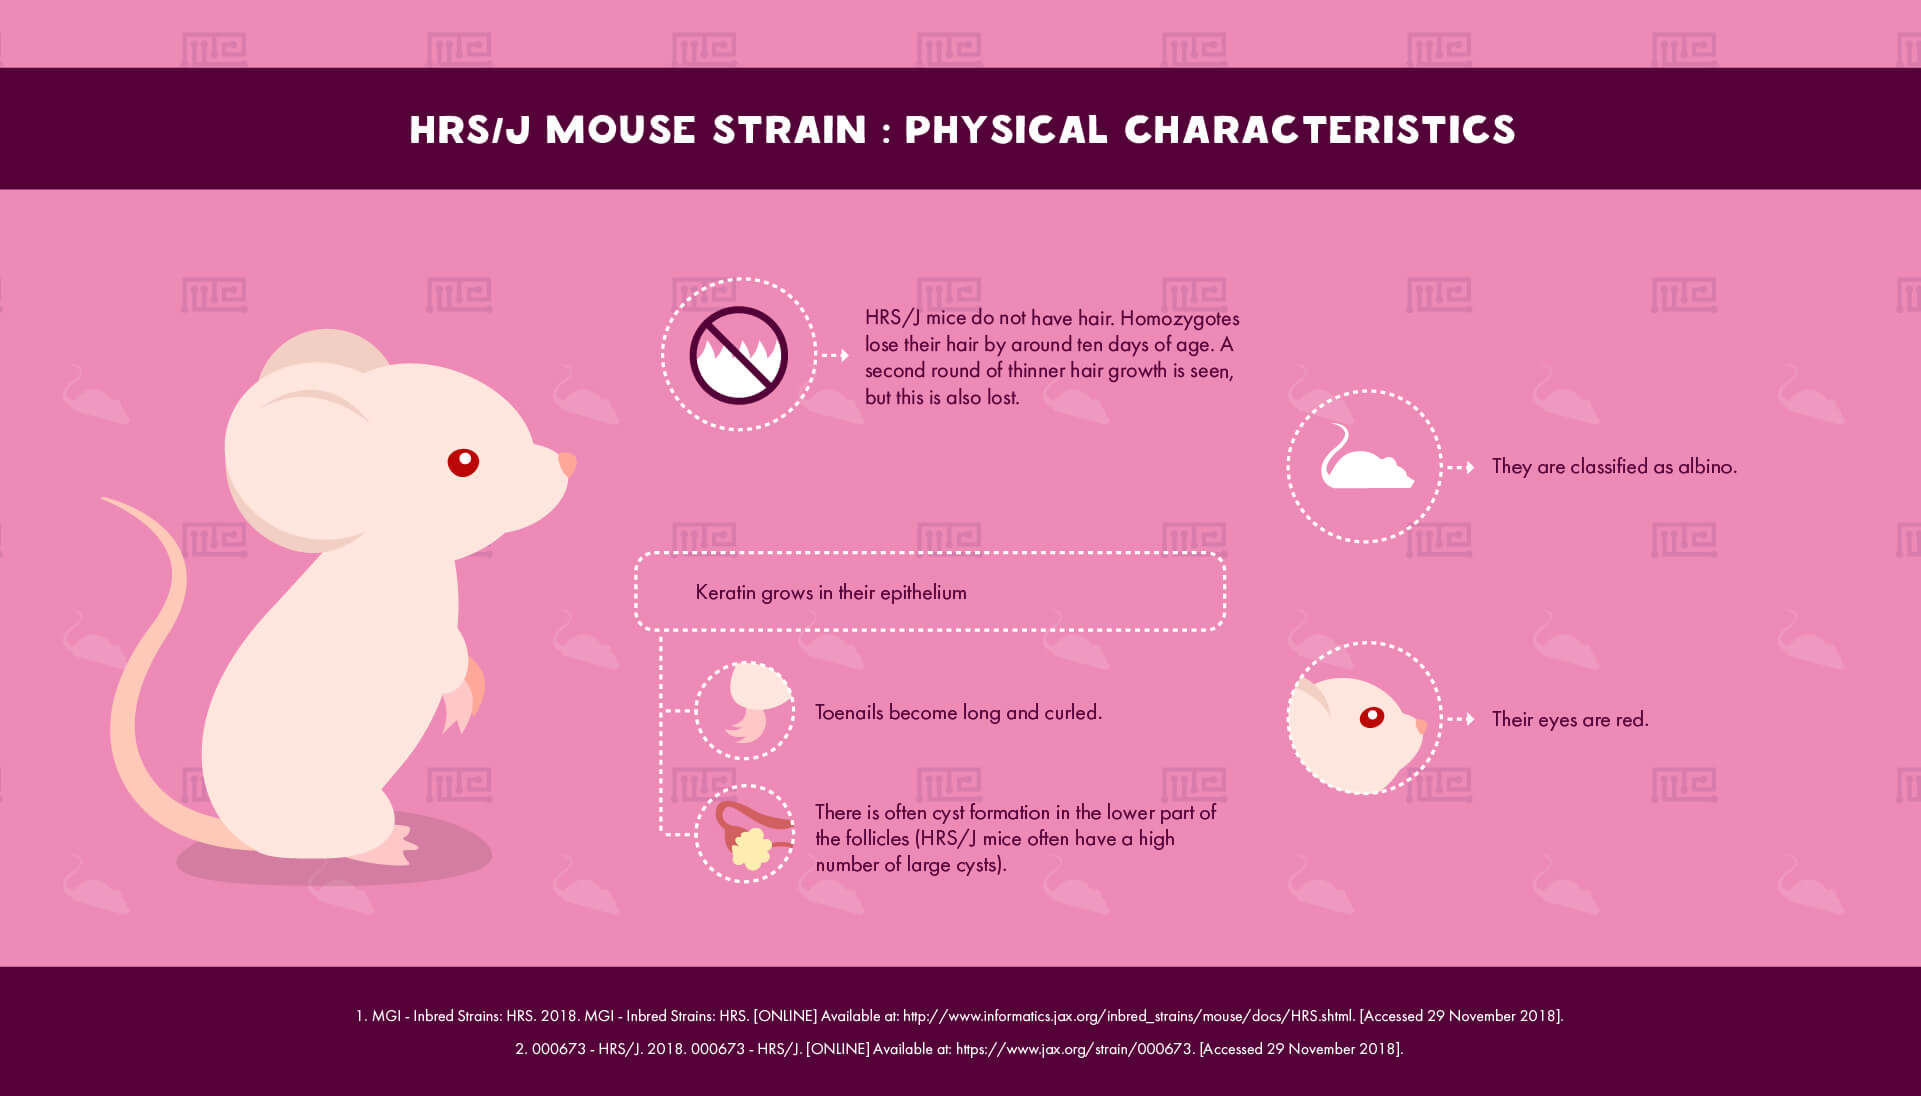 HRS/J Mouse Strain - Physical Characteristics